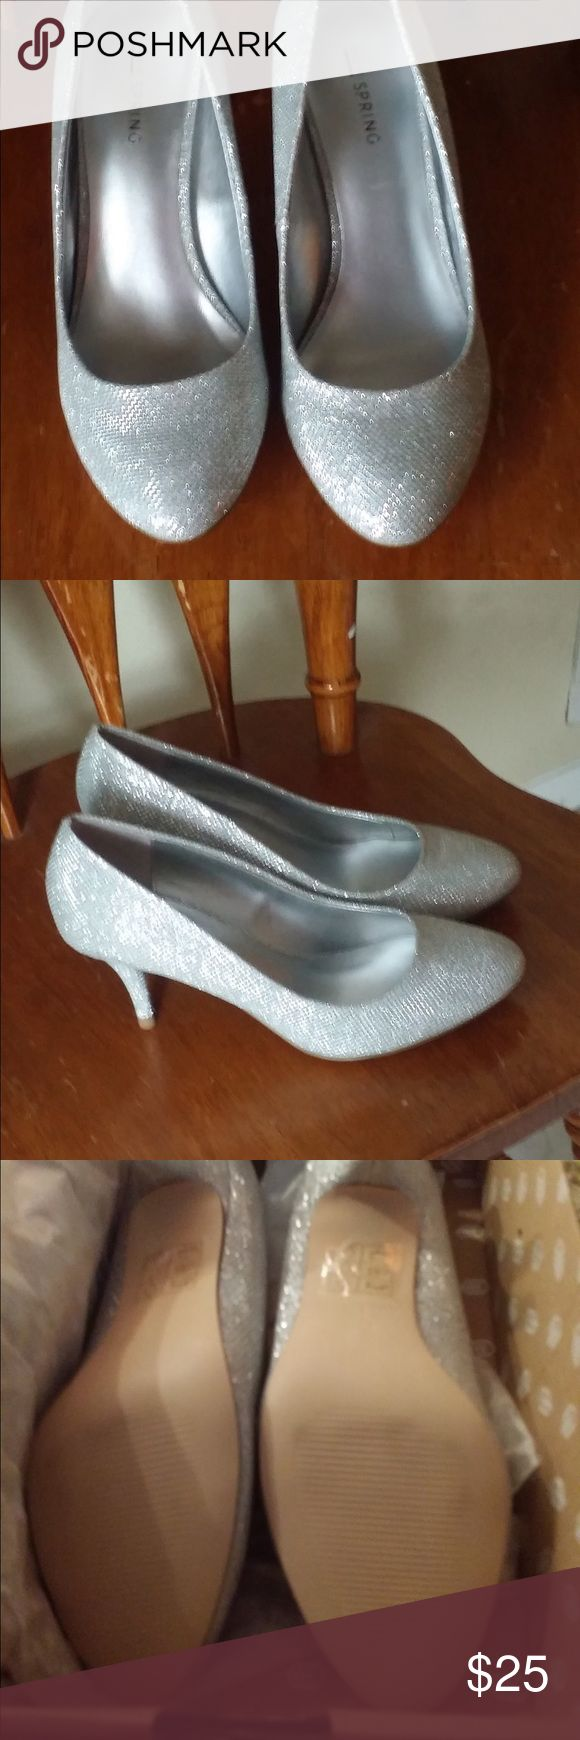 Silver heels, new with tags Glittery silver. Size 8. JCPenney. New with tags. Short heel. Shoes Heels